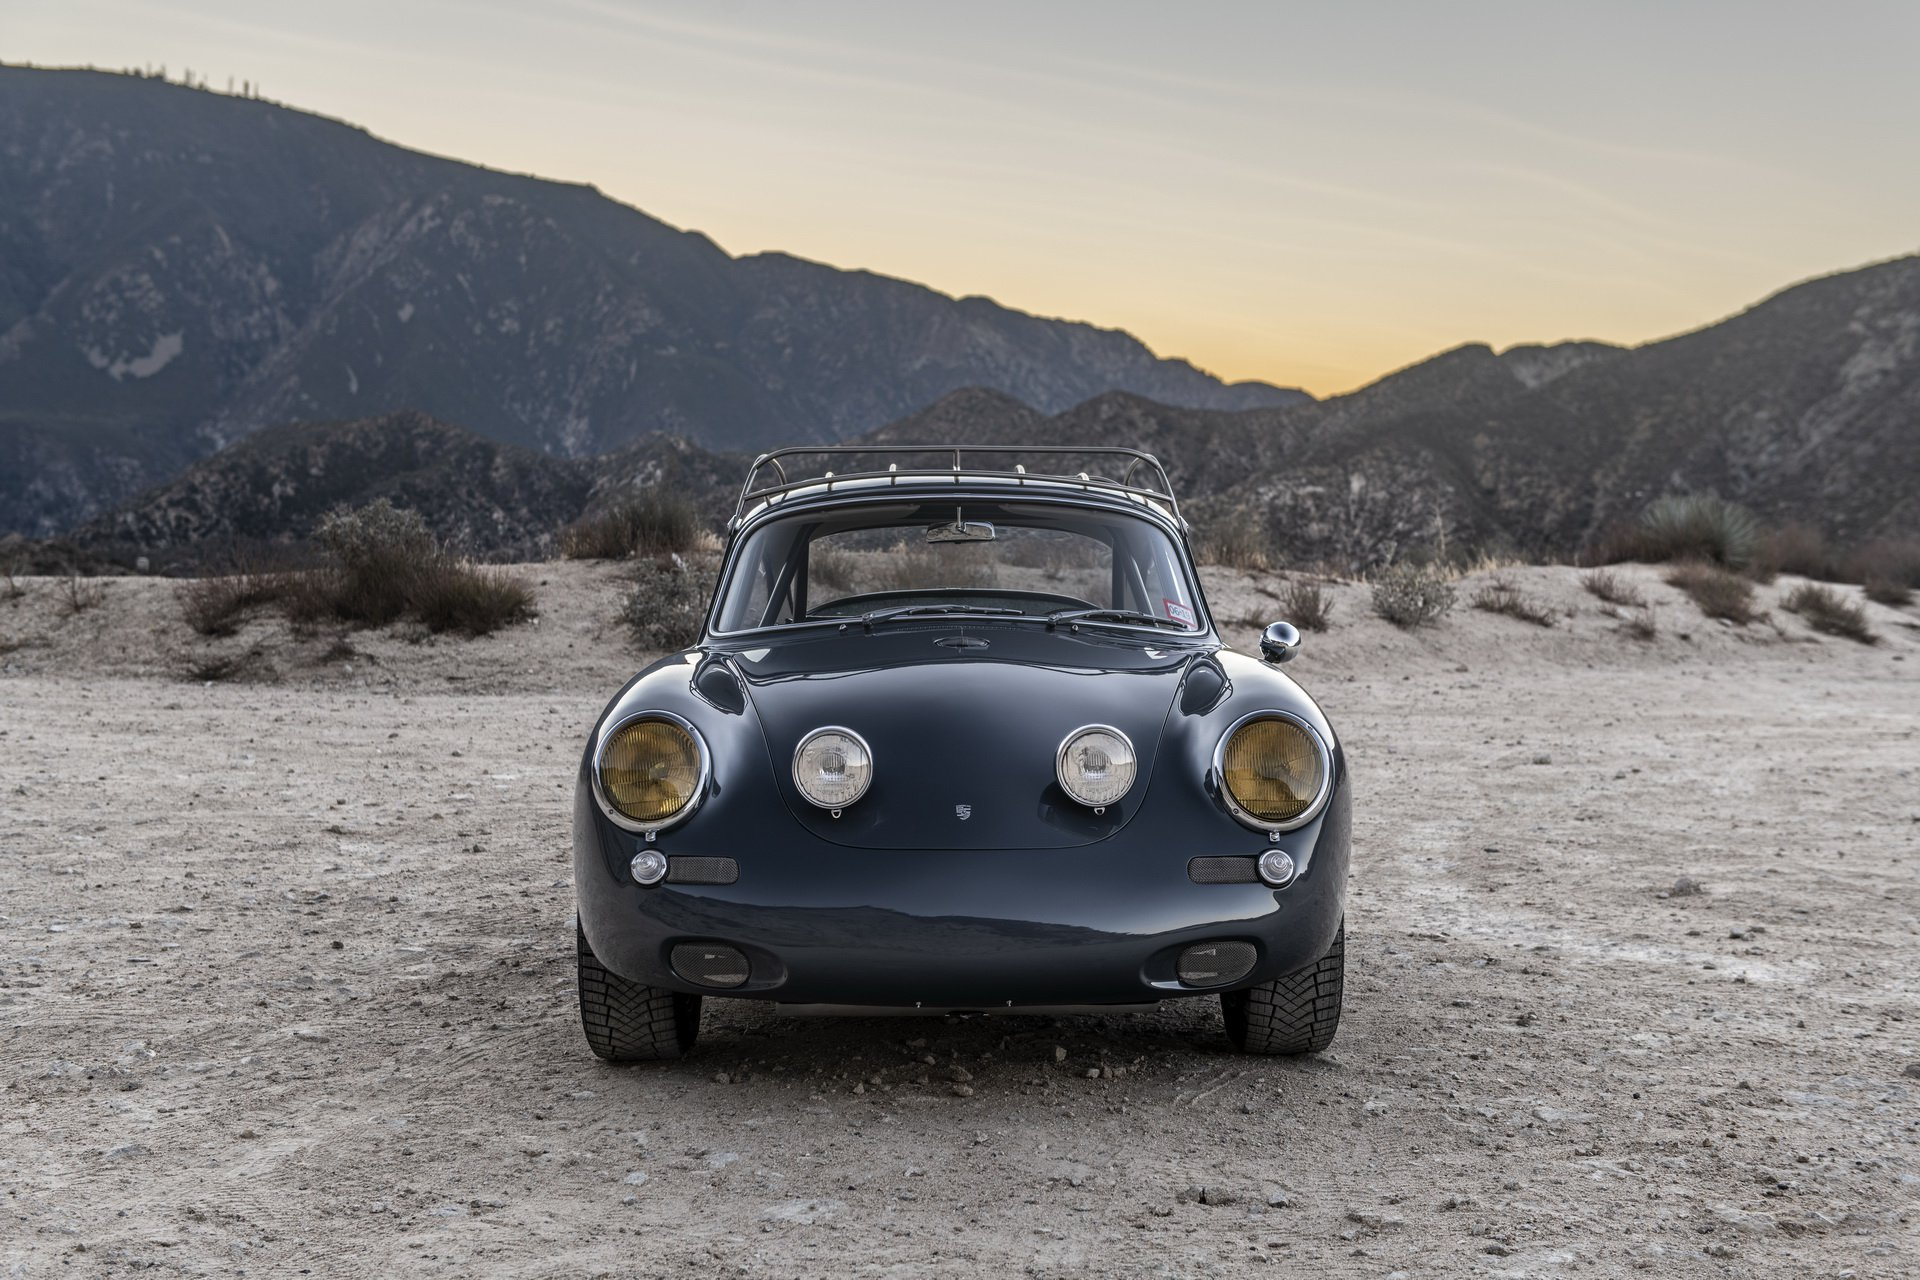 AWD Porsche 356 Coupe by Emory Motorsports (61)